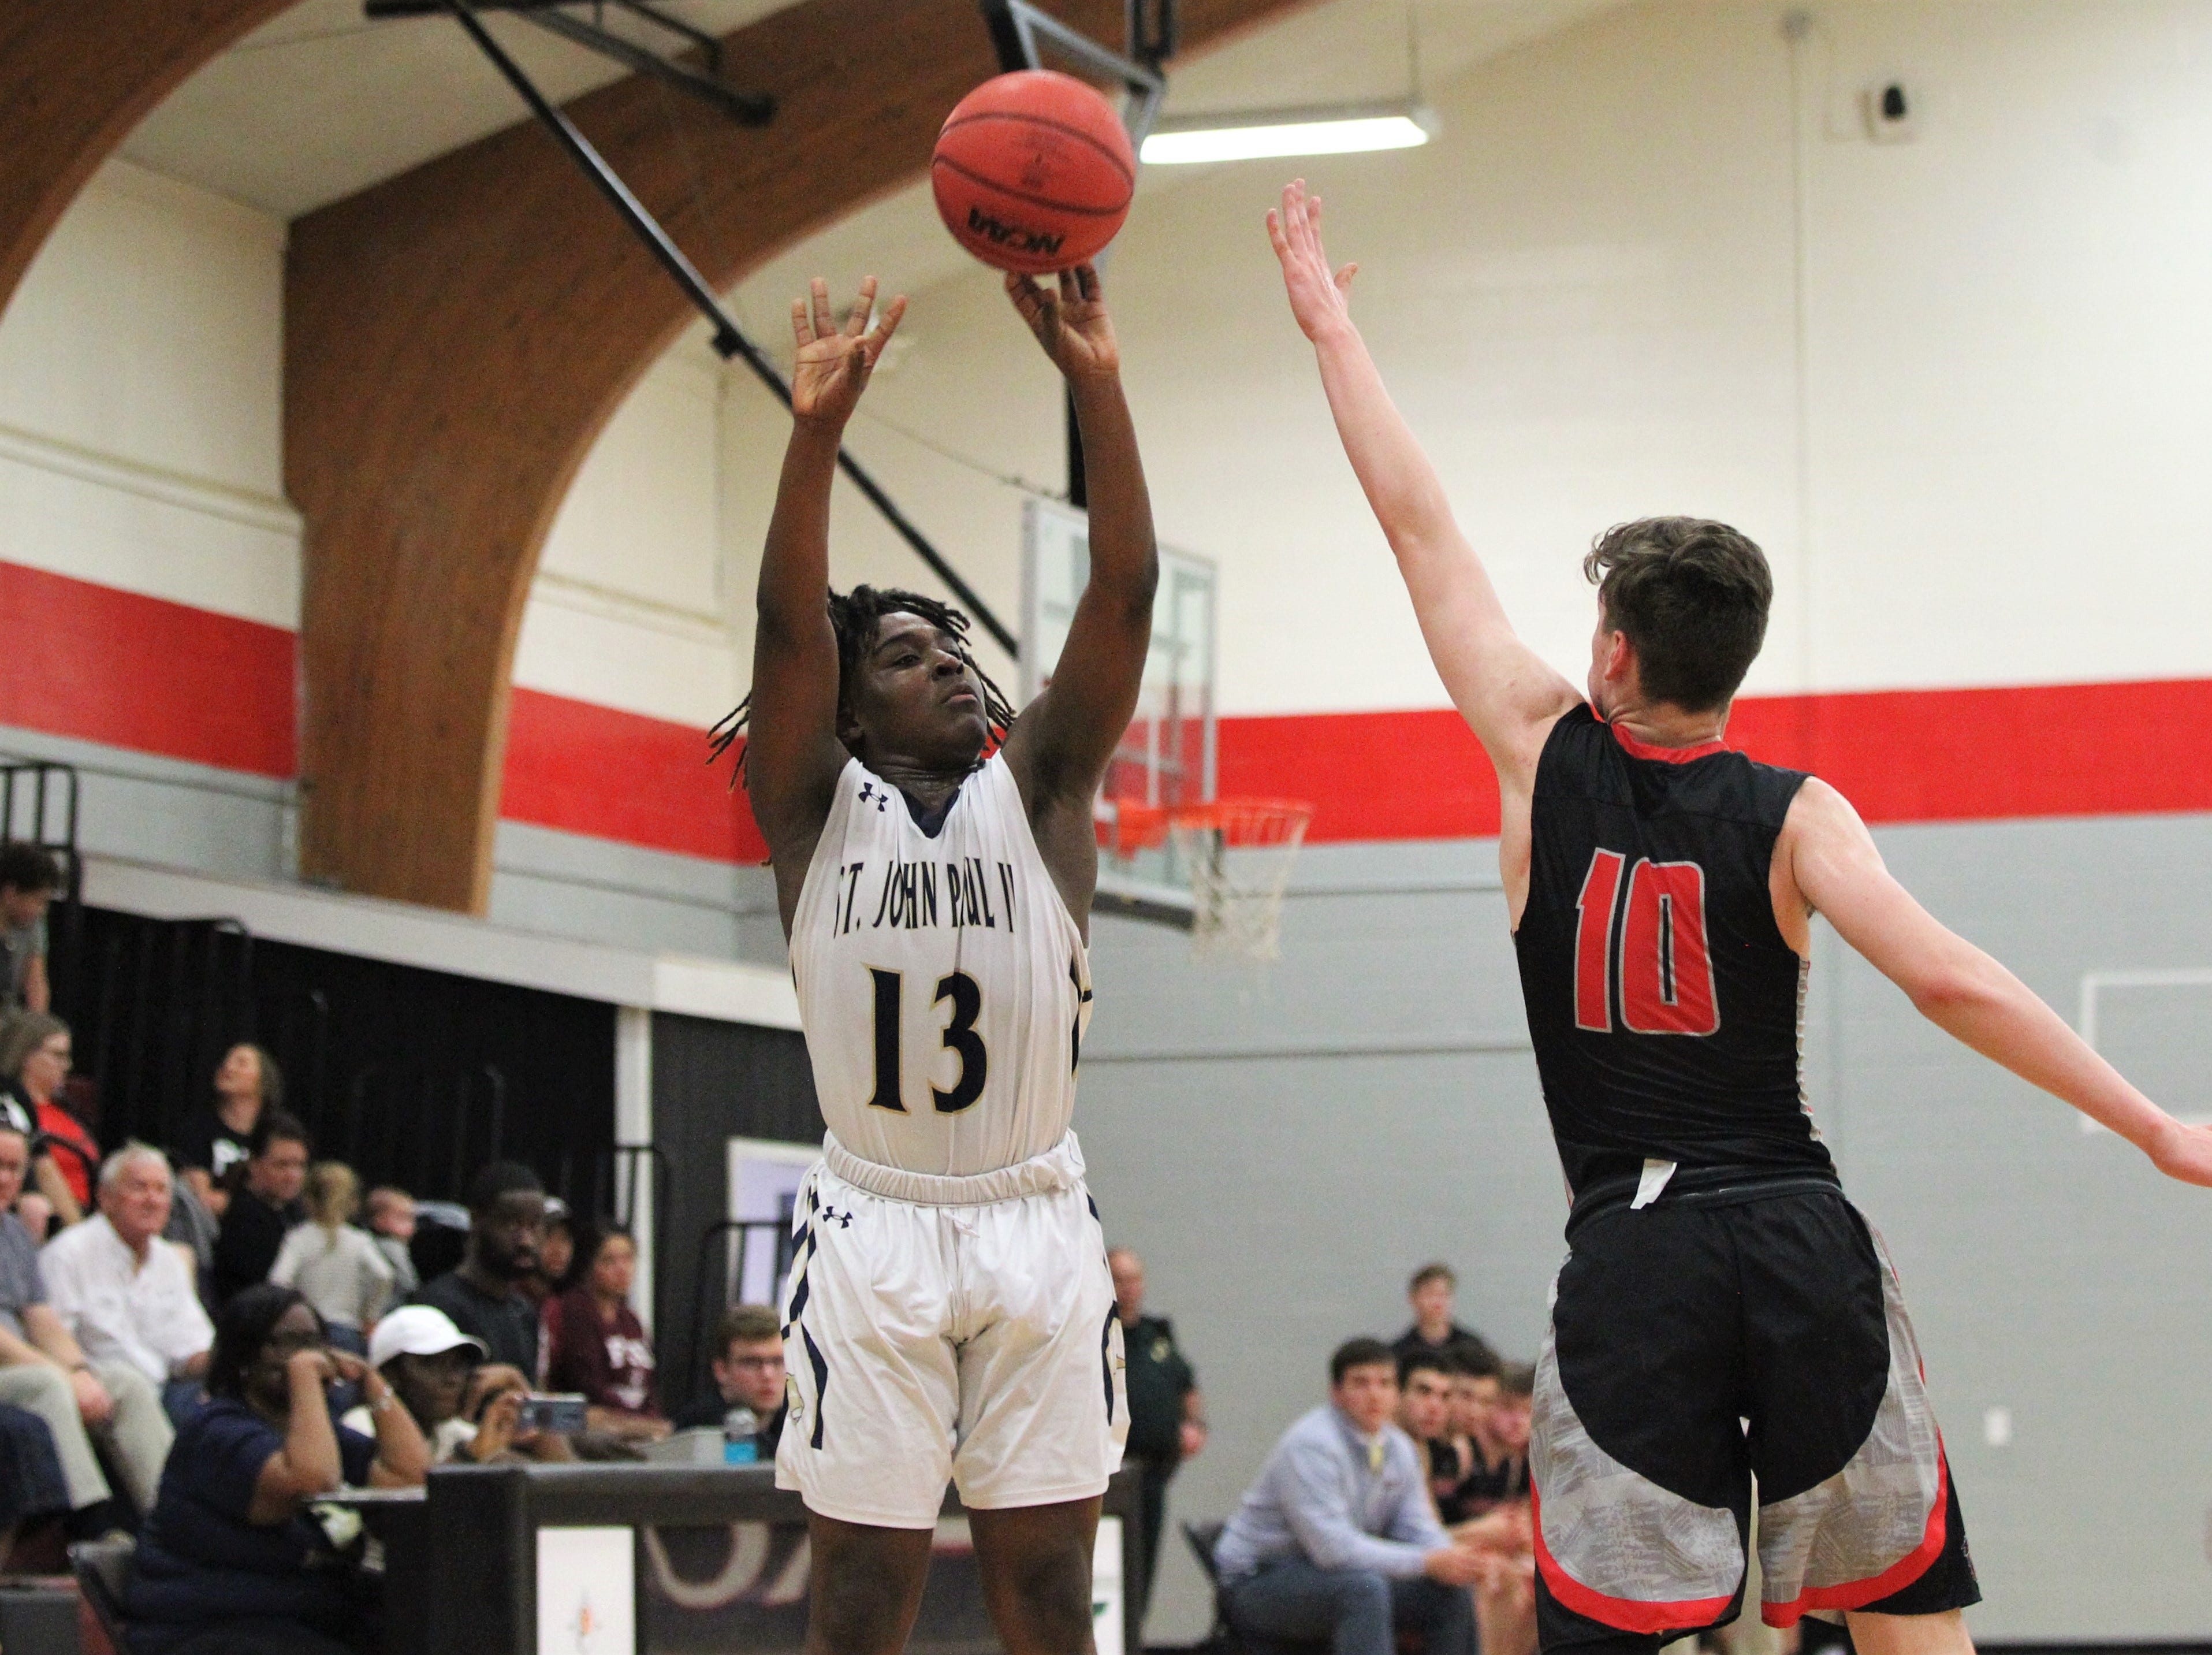 St. John Paul II guard Tyreke McElwain shoots a 3-pointer as St. John Paul II's boys basketball team captured a District 1-3A title by beating Pensacola Christian 85-51 at NFC on Feb. 16, 2019.